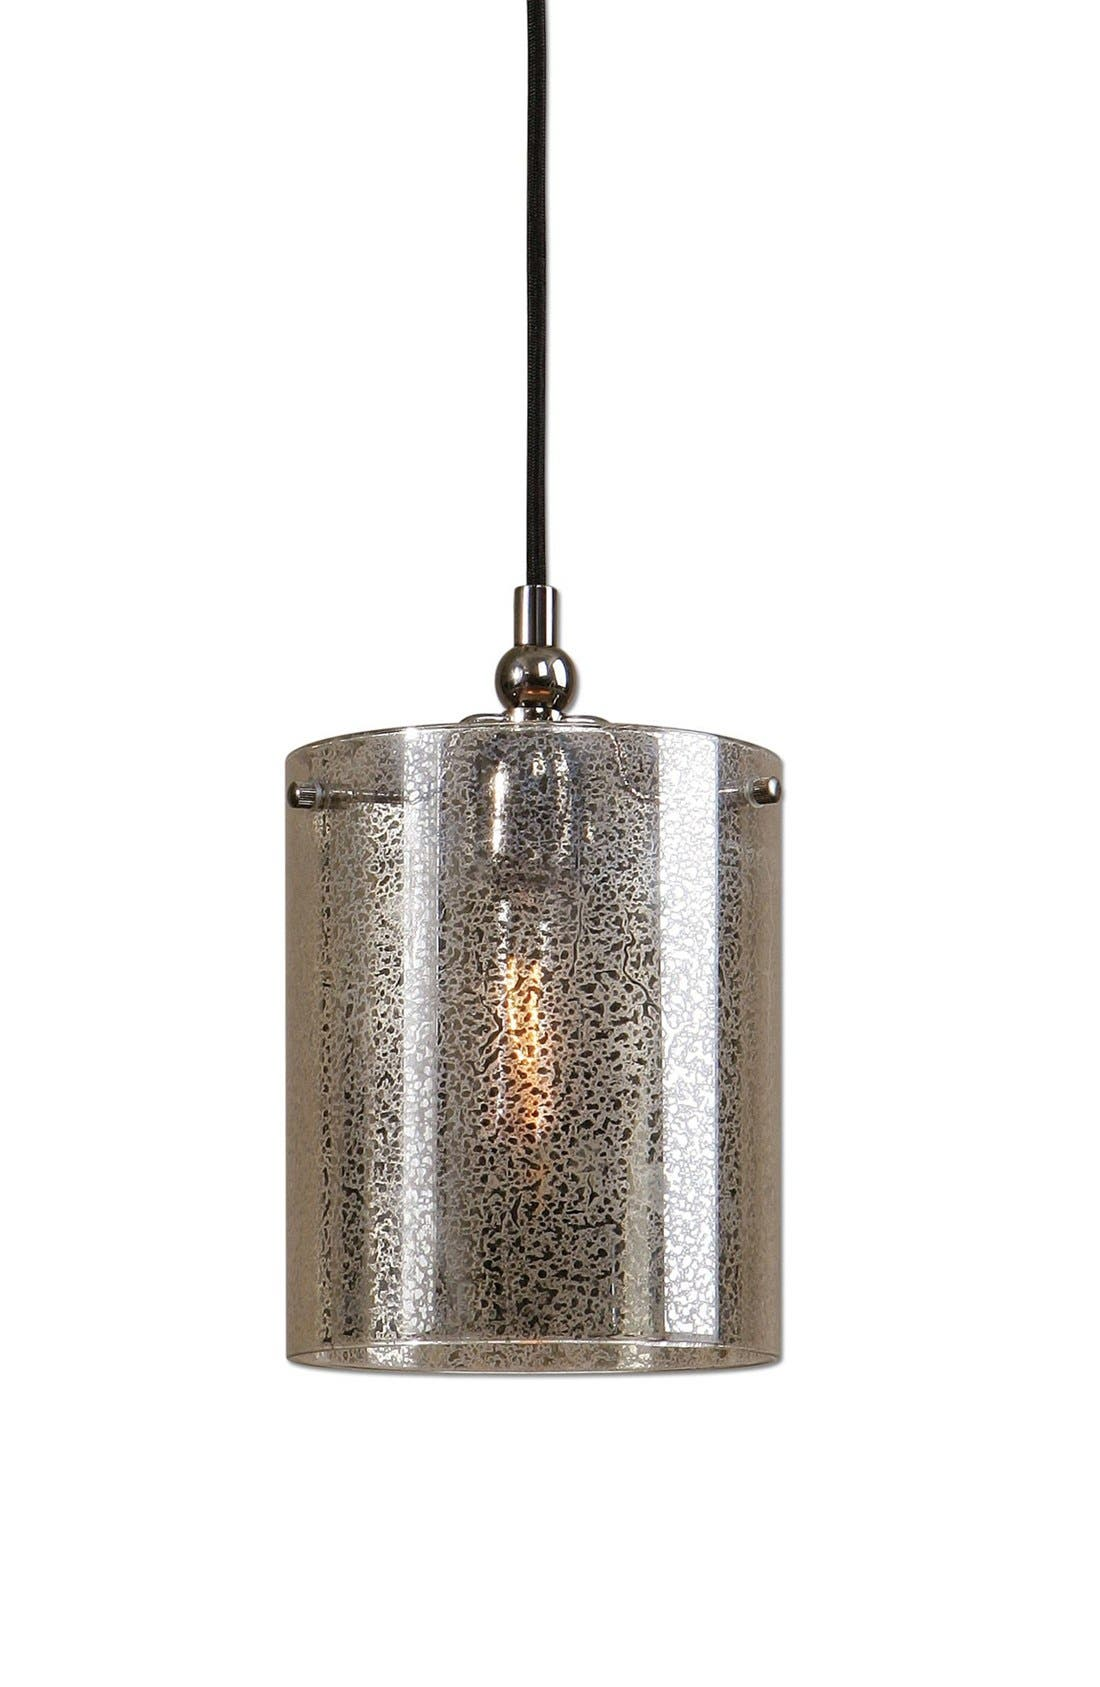 Alternate Image 1 Selected - Uttermost 'Mariano' Mercury Glass Mini Pendant Lamp